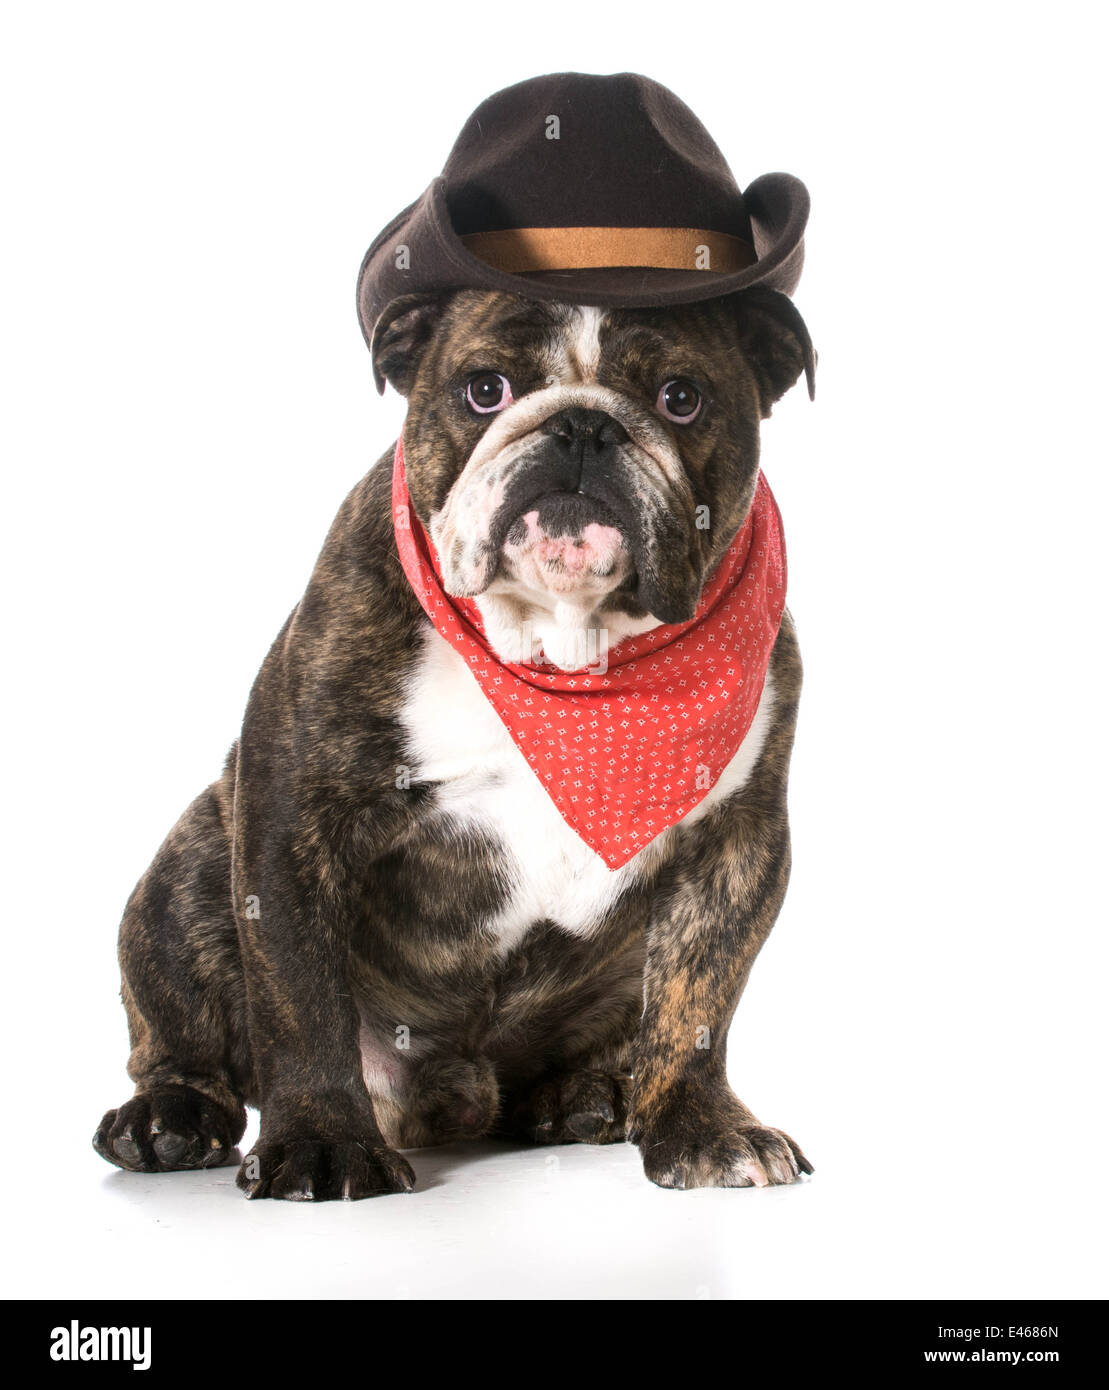 Country Dog English Bulldog Wearing Red Bandanna And Cowboy Hat On